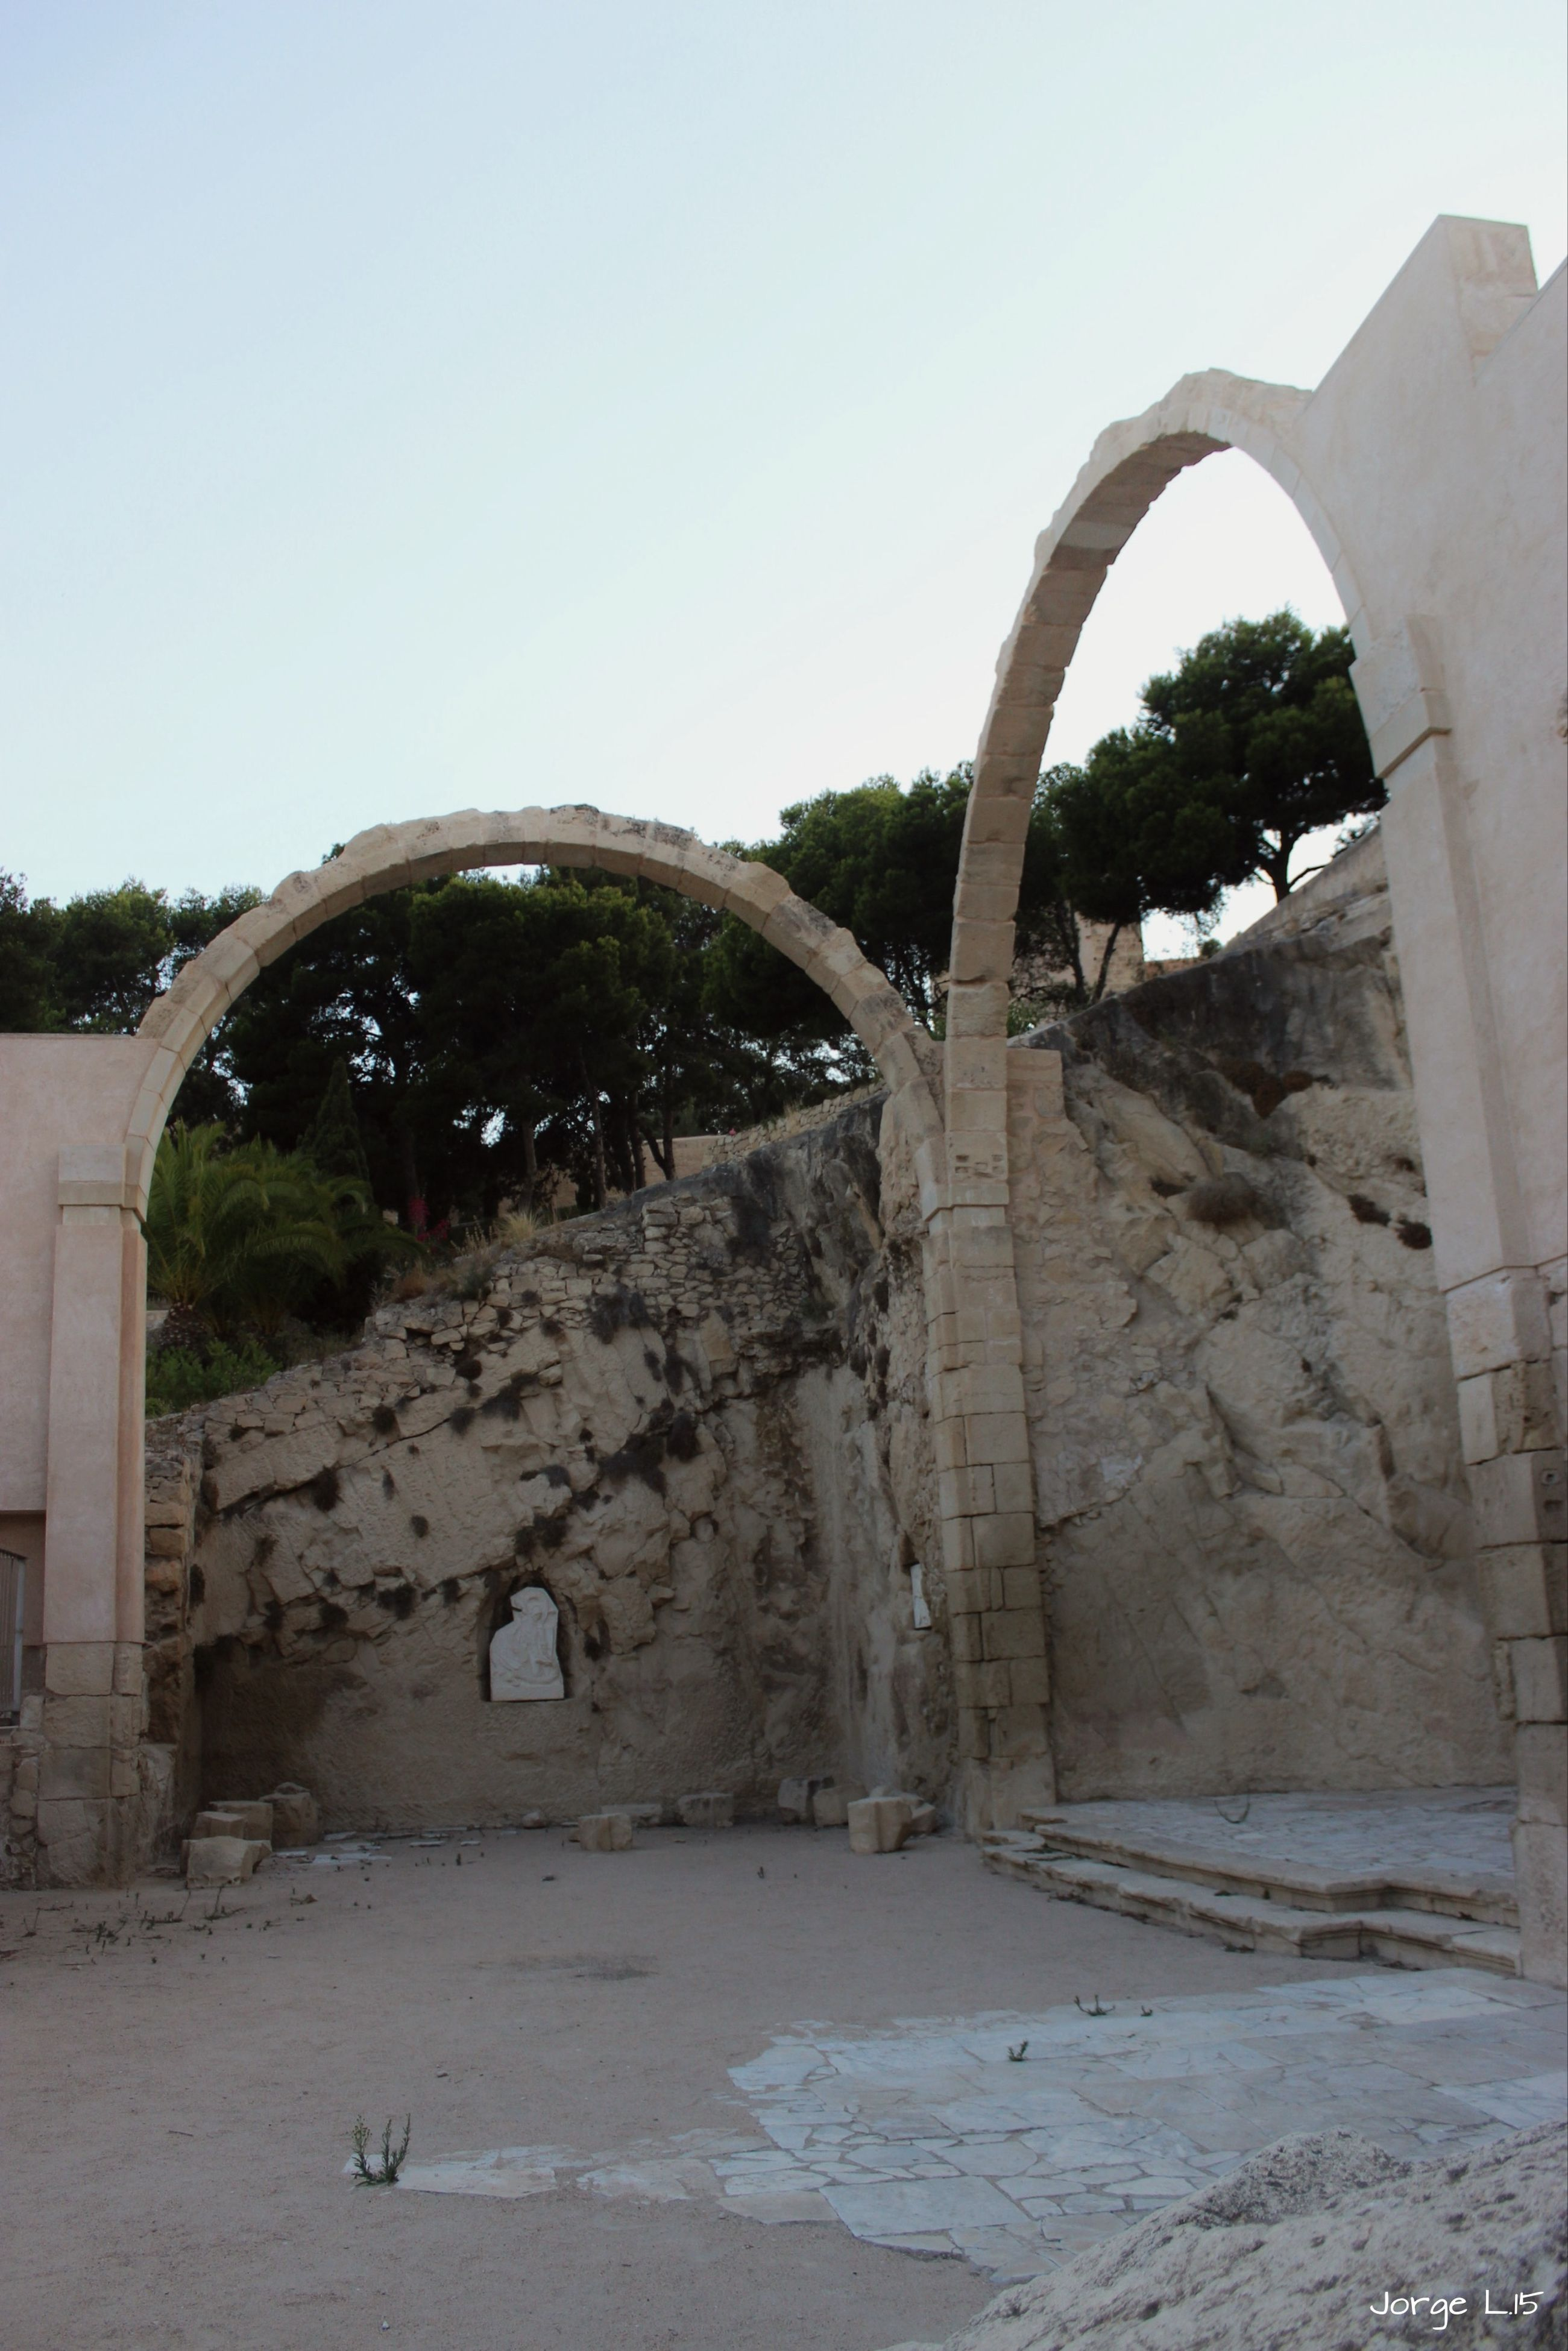 architecture, built structure, arch, building exterior, clear sky, tree, wall - building feature, old, stone wall, house, abandoned, history, day, archway, wall, copy space, building, sunlight, outdoors, window